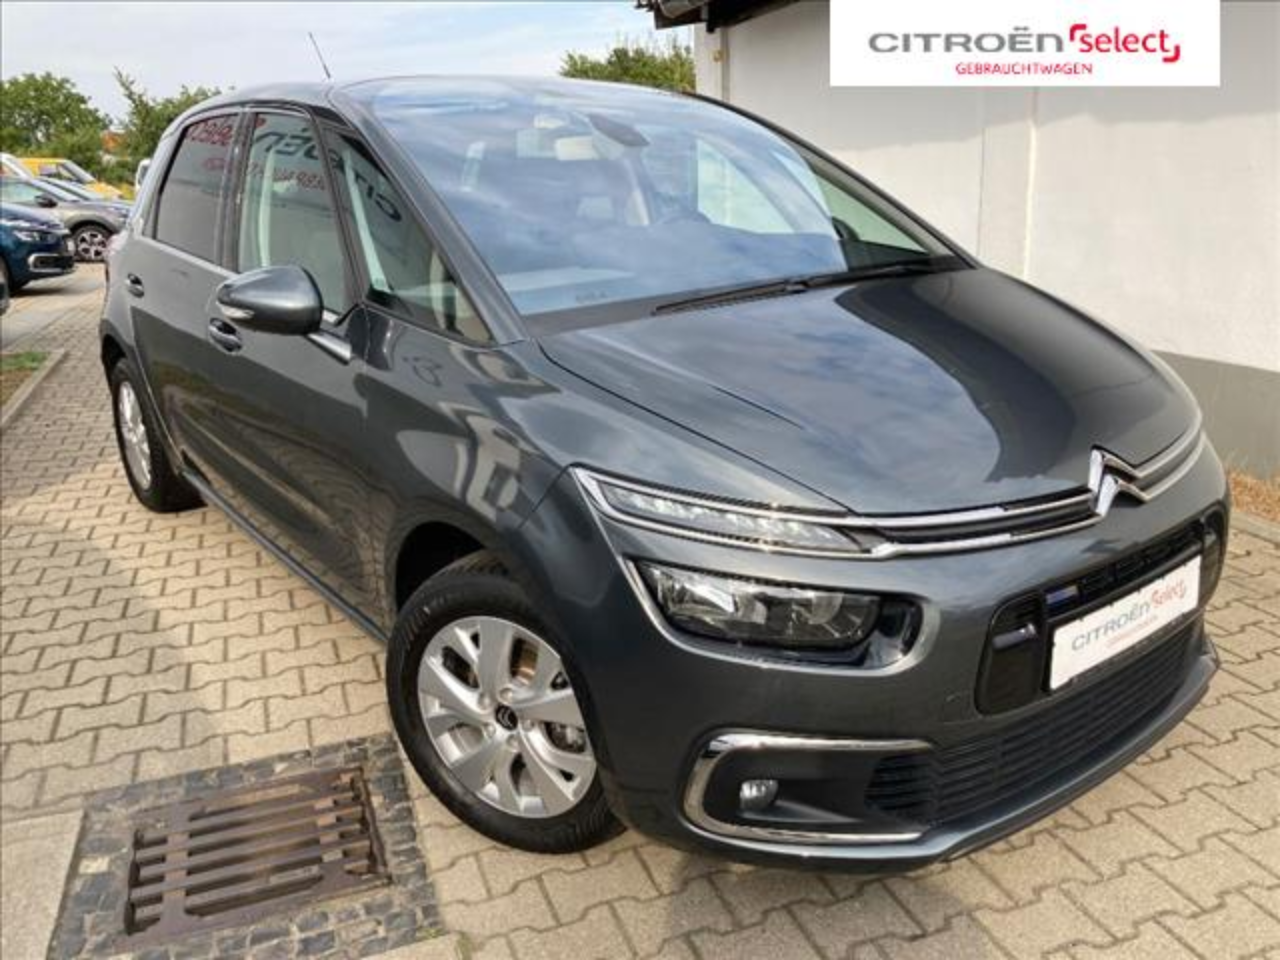 Citroën C4 Picasso PT 130 S&S SELECTION, Austauschmotor